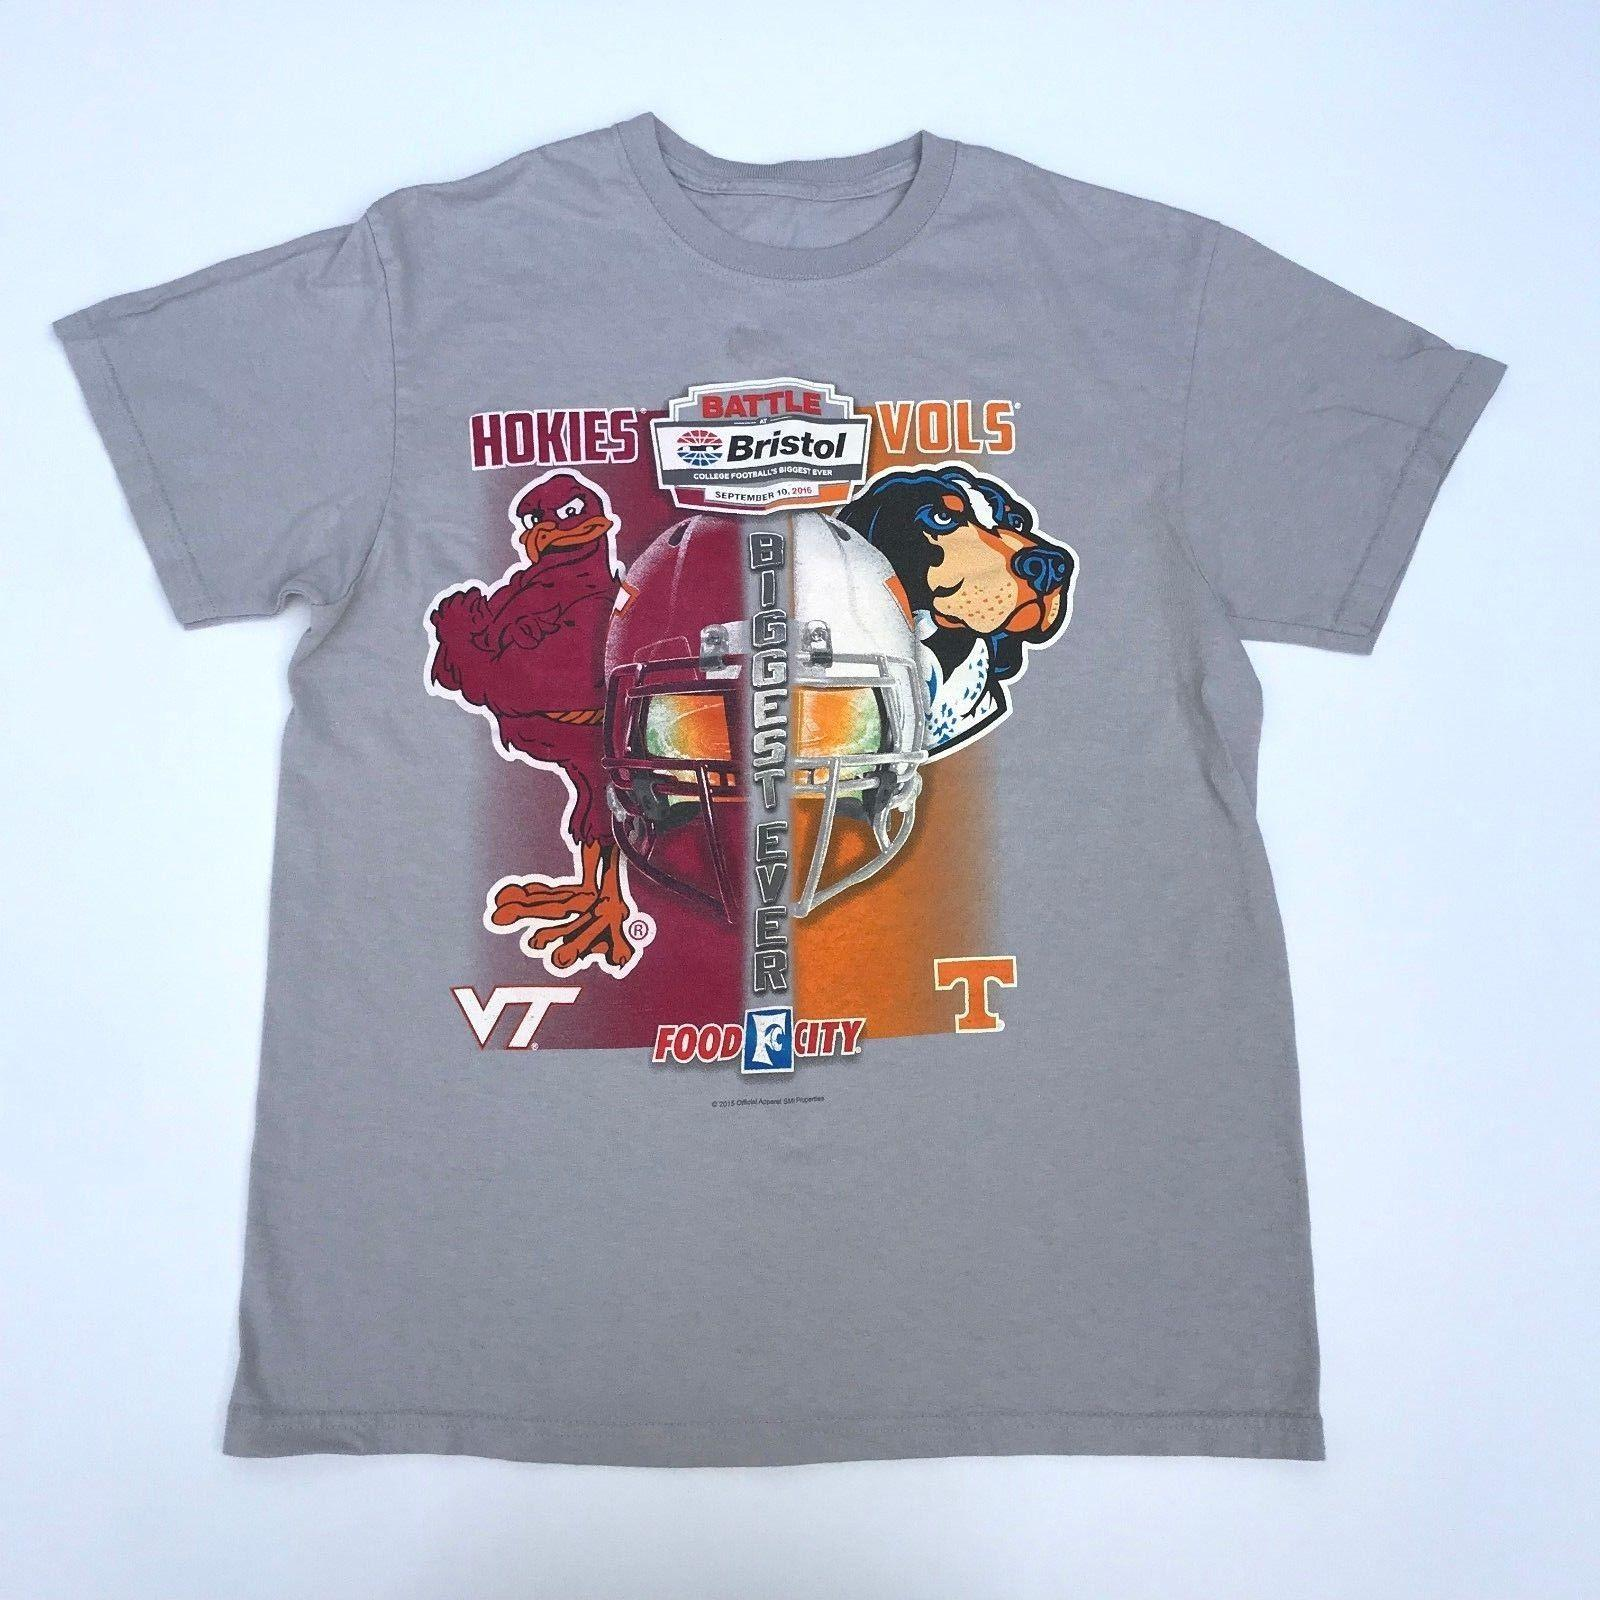 88cca0faa14 Vintage Graphic Printed T Shirt Hokies Vols USA College Football 2016   TS163 Custom T Shirt Logo Text Photo Mens T Shirts Only Awesome Tee From  ...